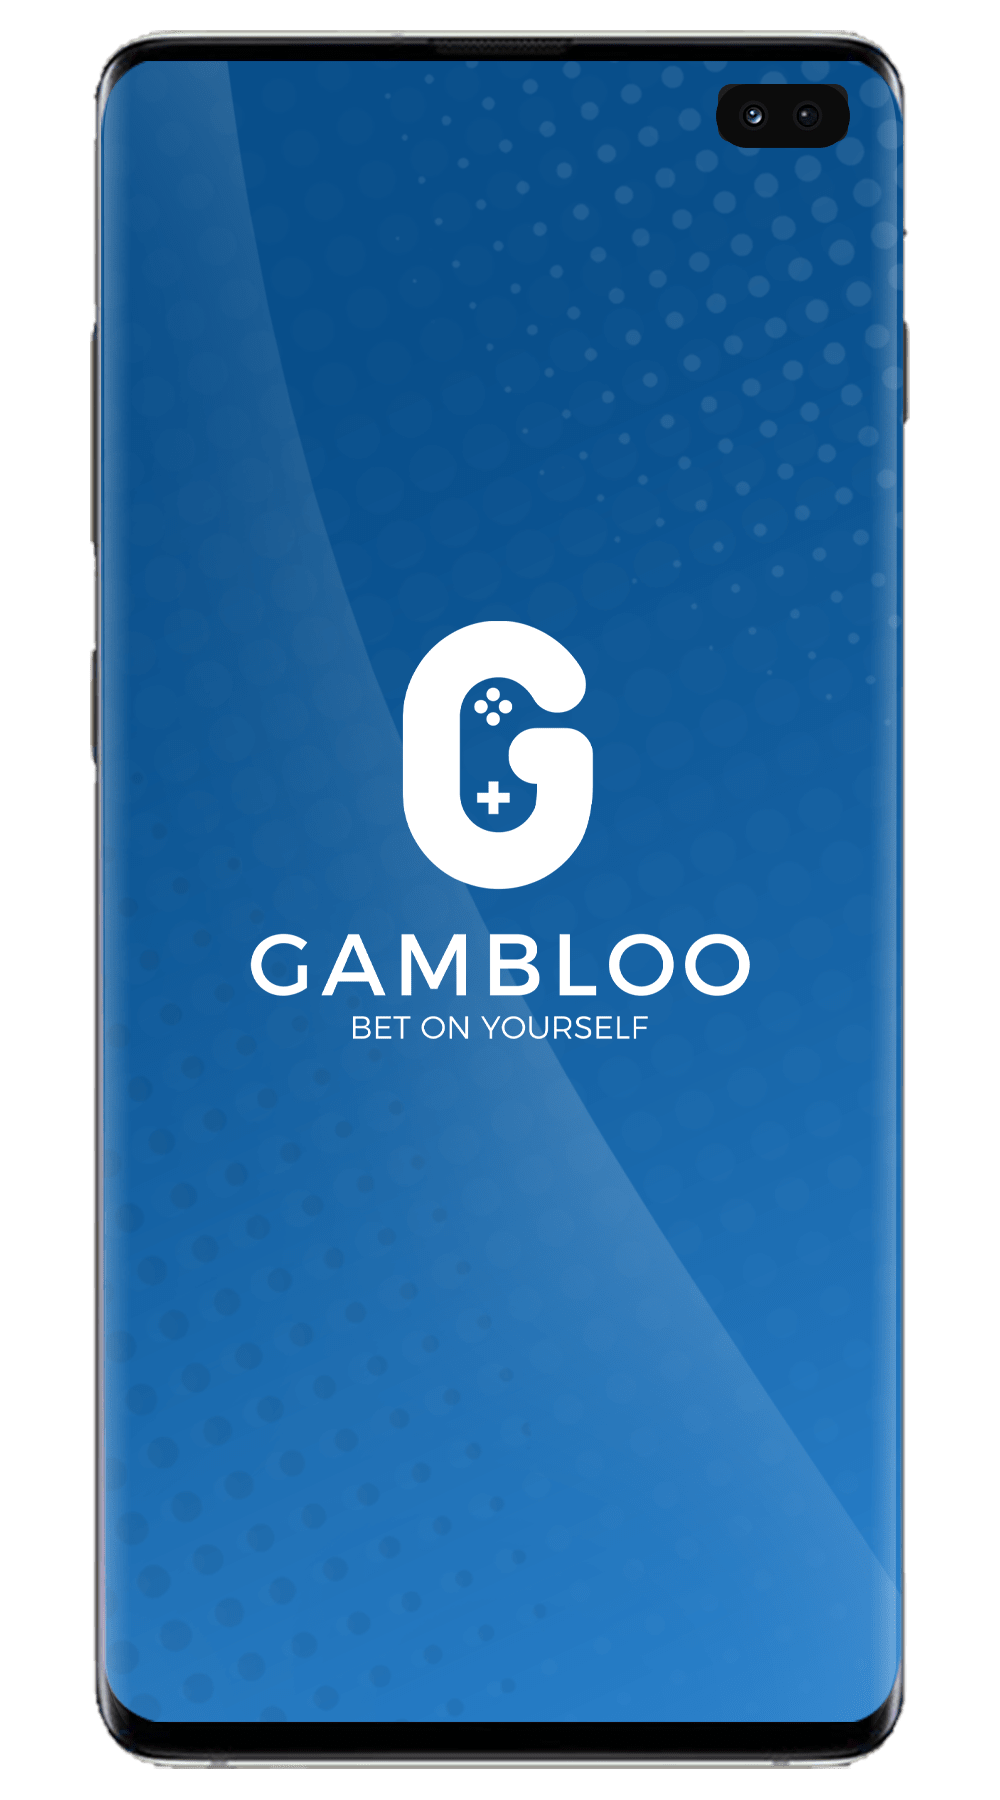 Gambloo android app